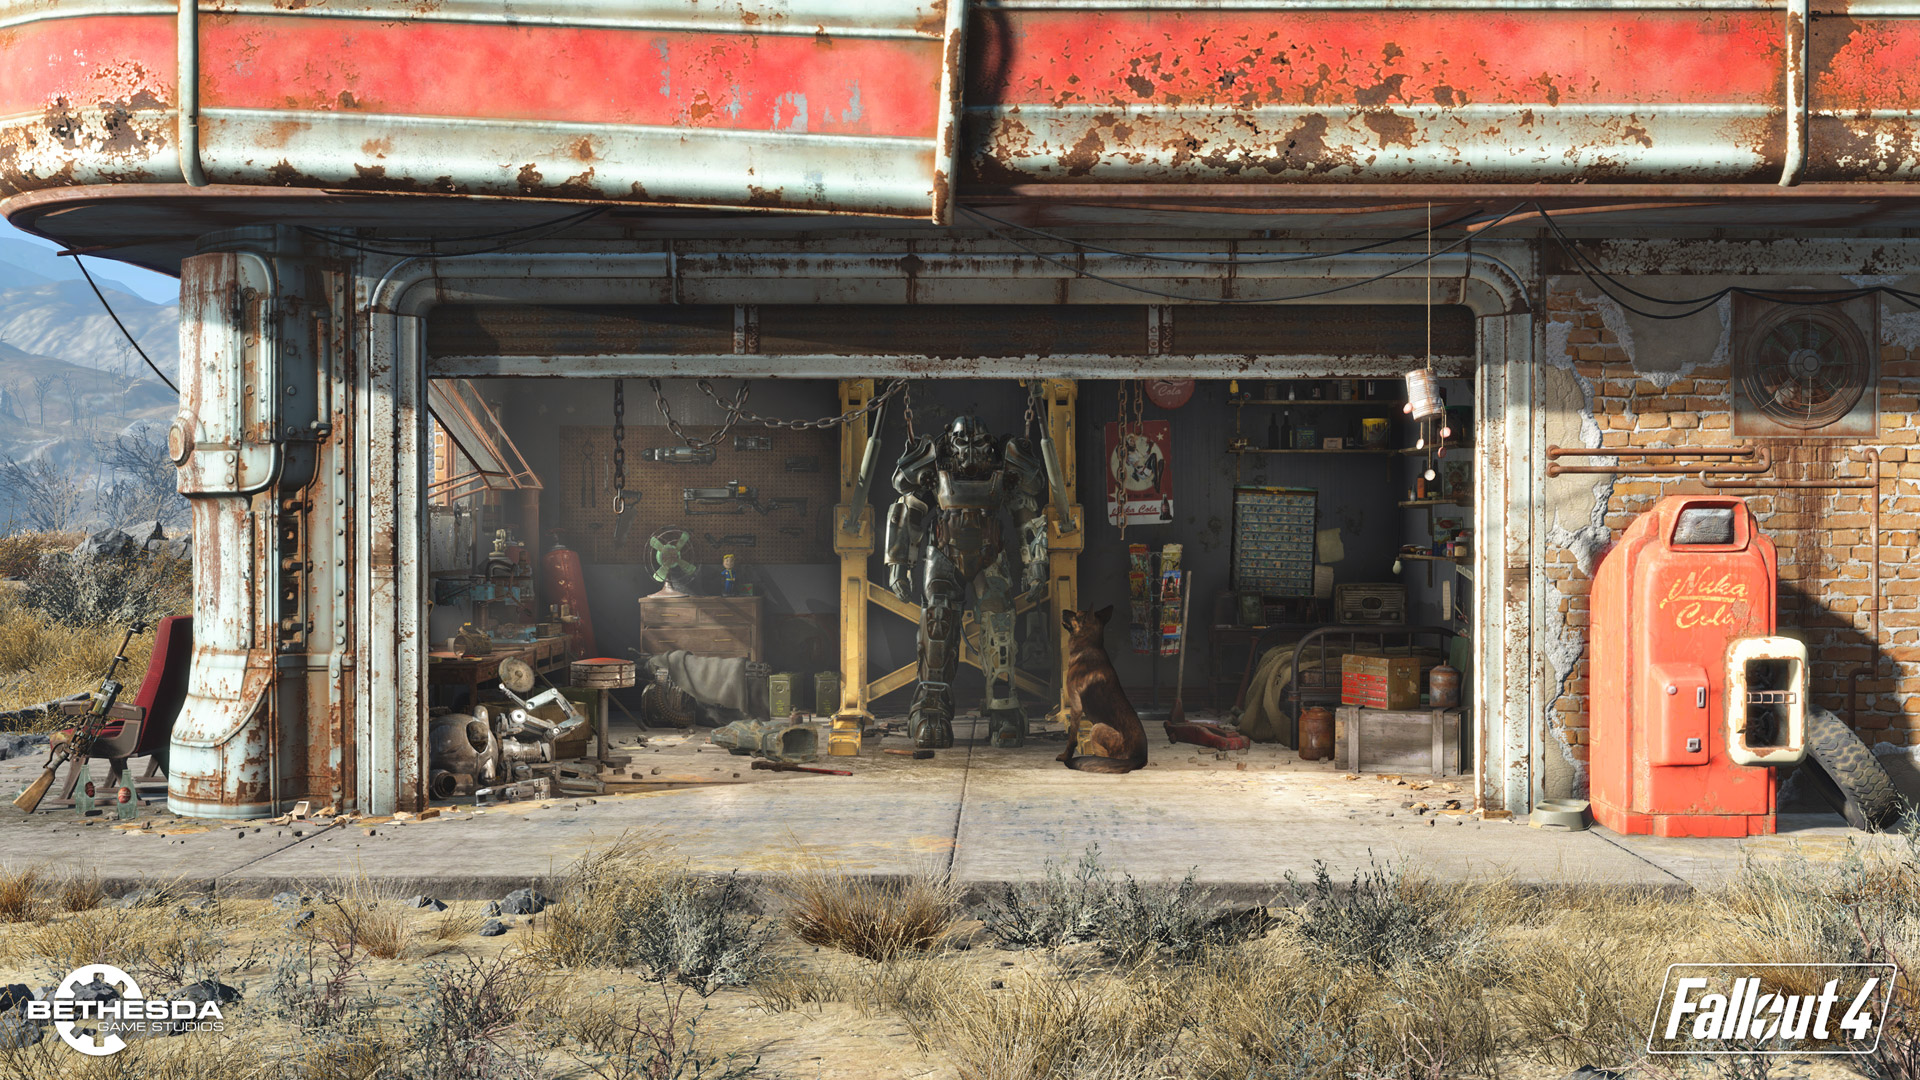 Fallout 4 wallpaper 7